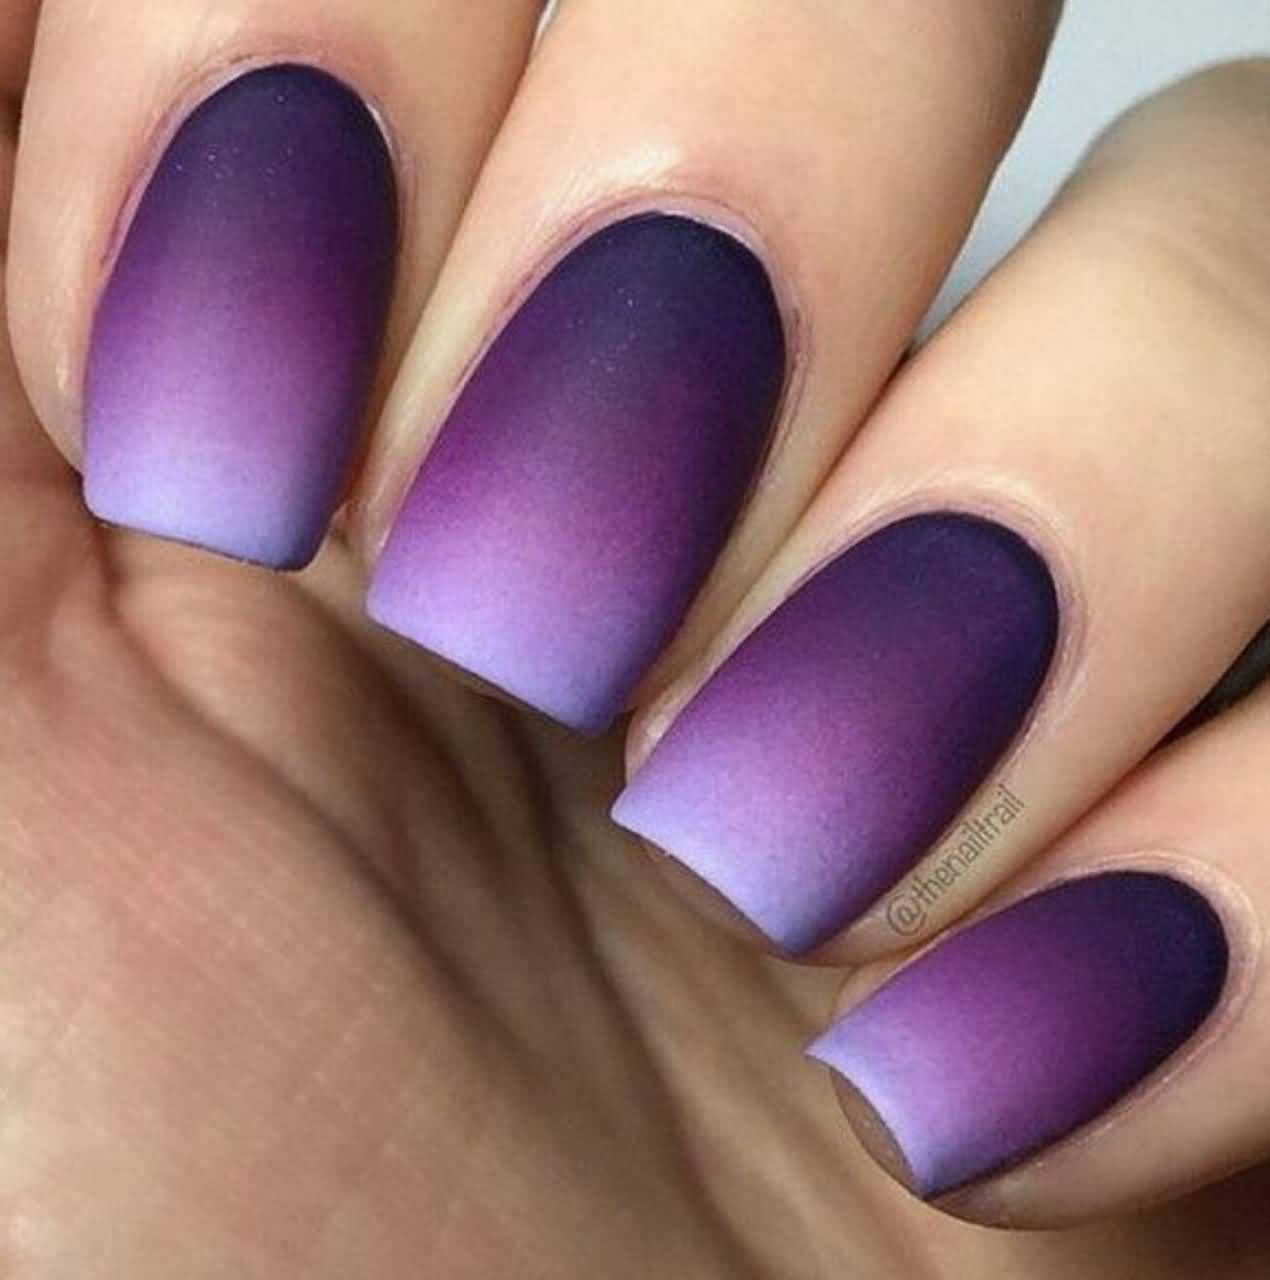 it's a picture of simple nail art with gradient design